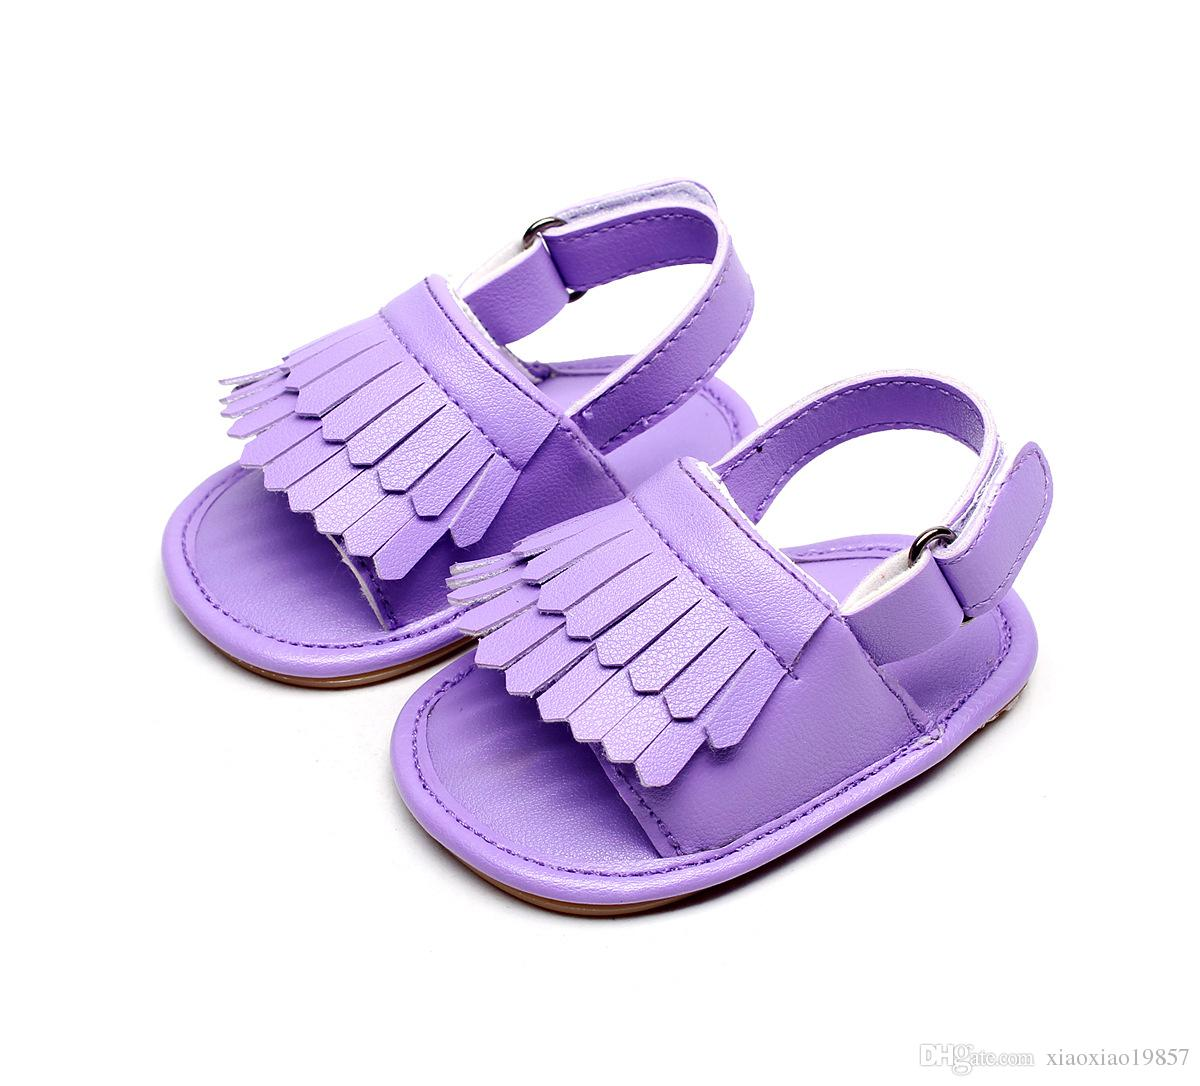 6aa5ea407d Baby Sandals Summer Newborns Leisure Baby Girls Sandals of Children PU  Tassel Clogs Shoes Toddlers Infant Sandals 14 Colors